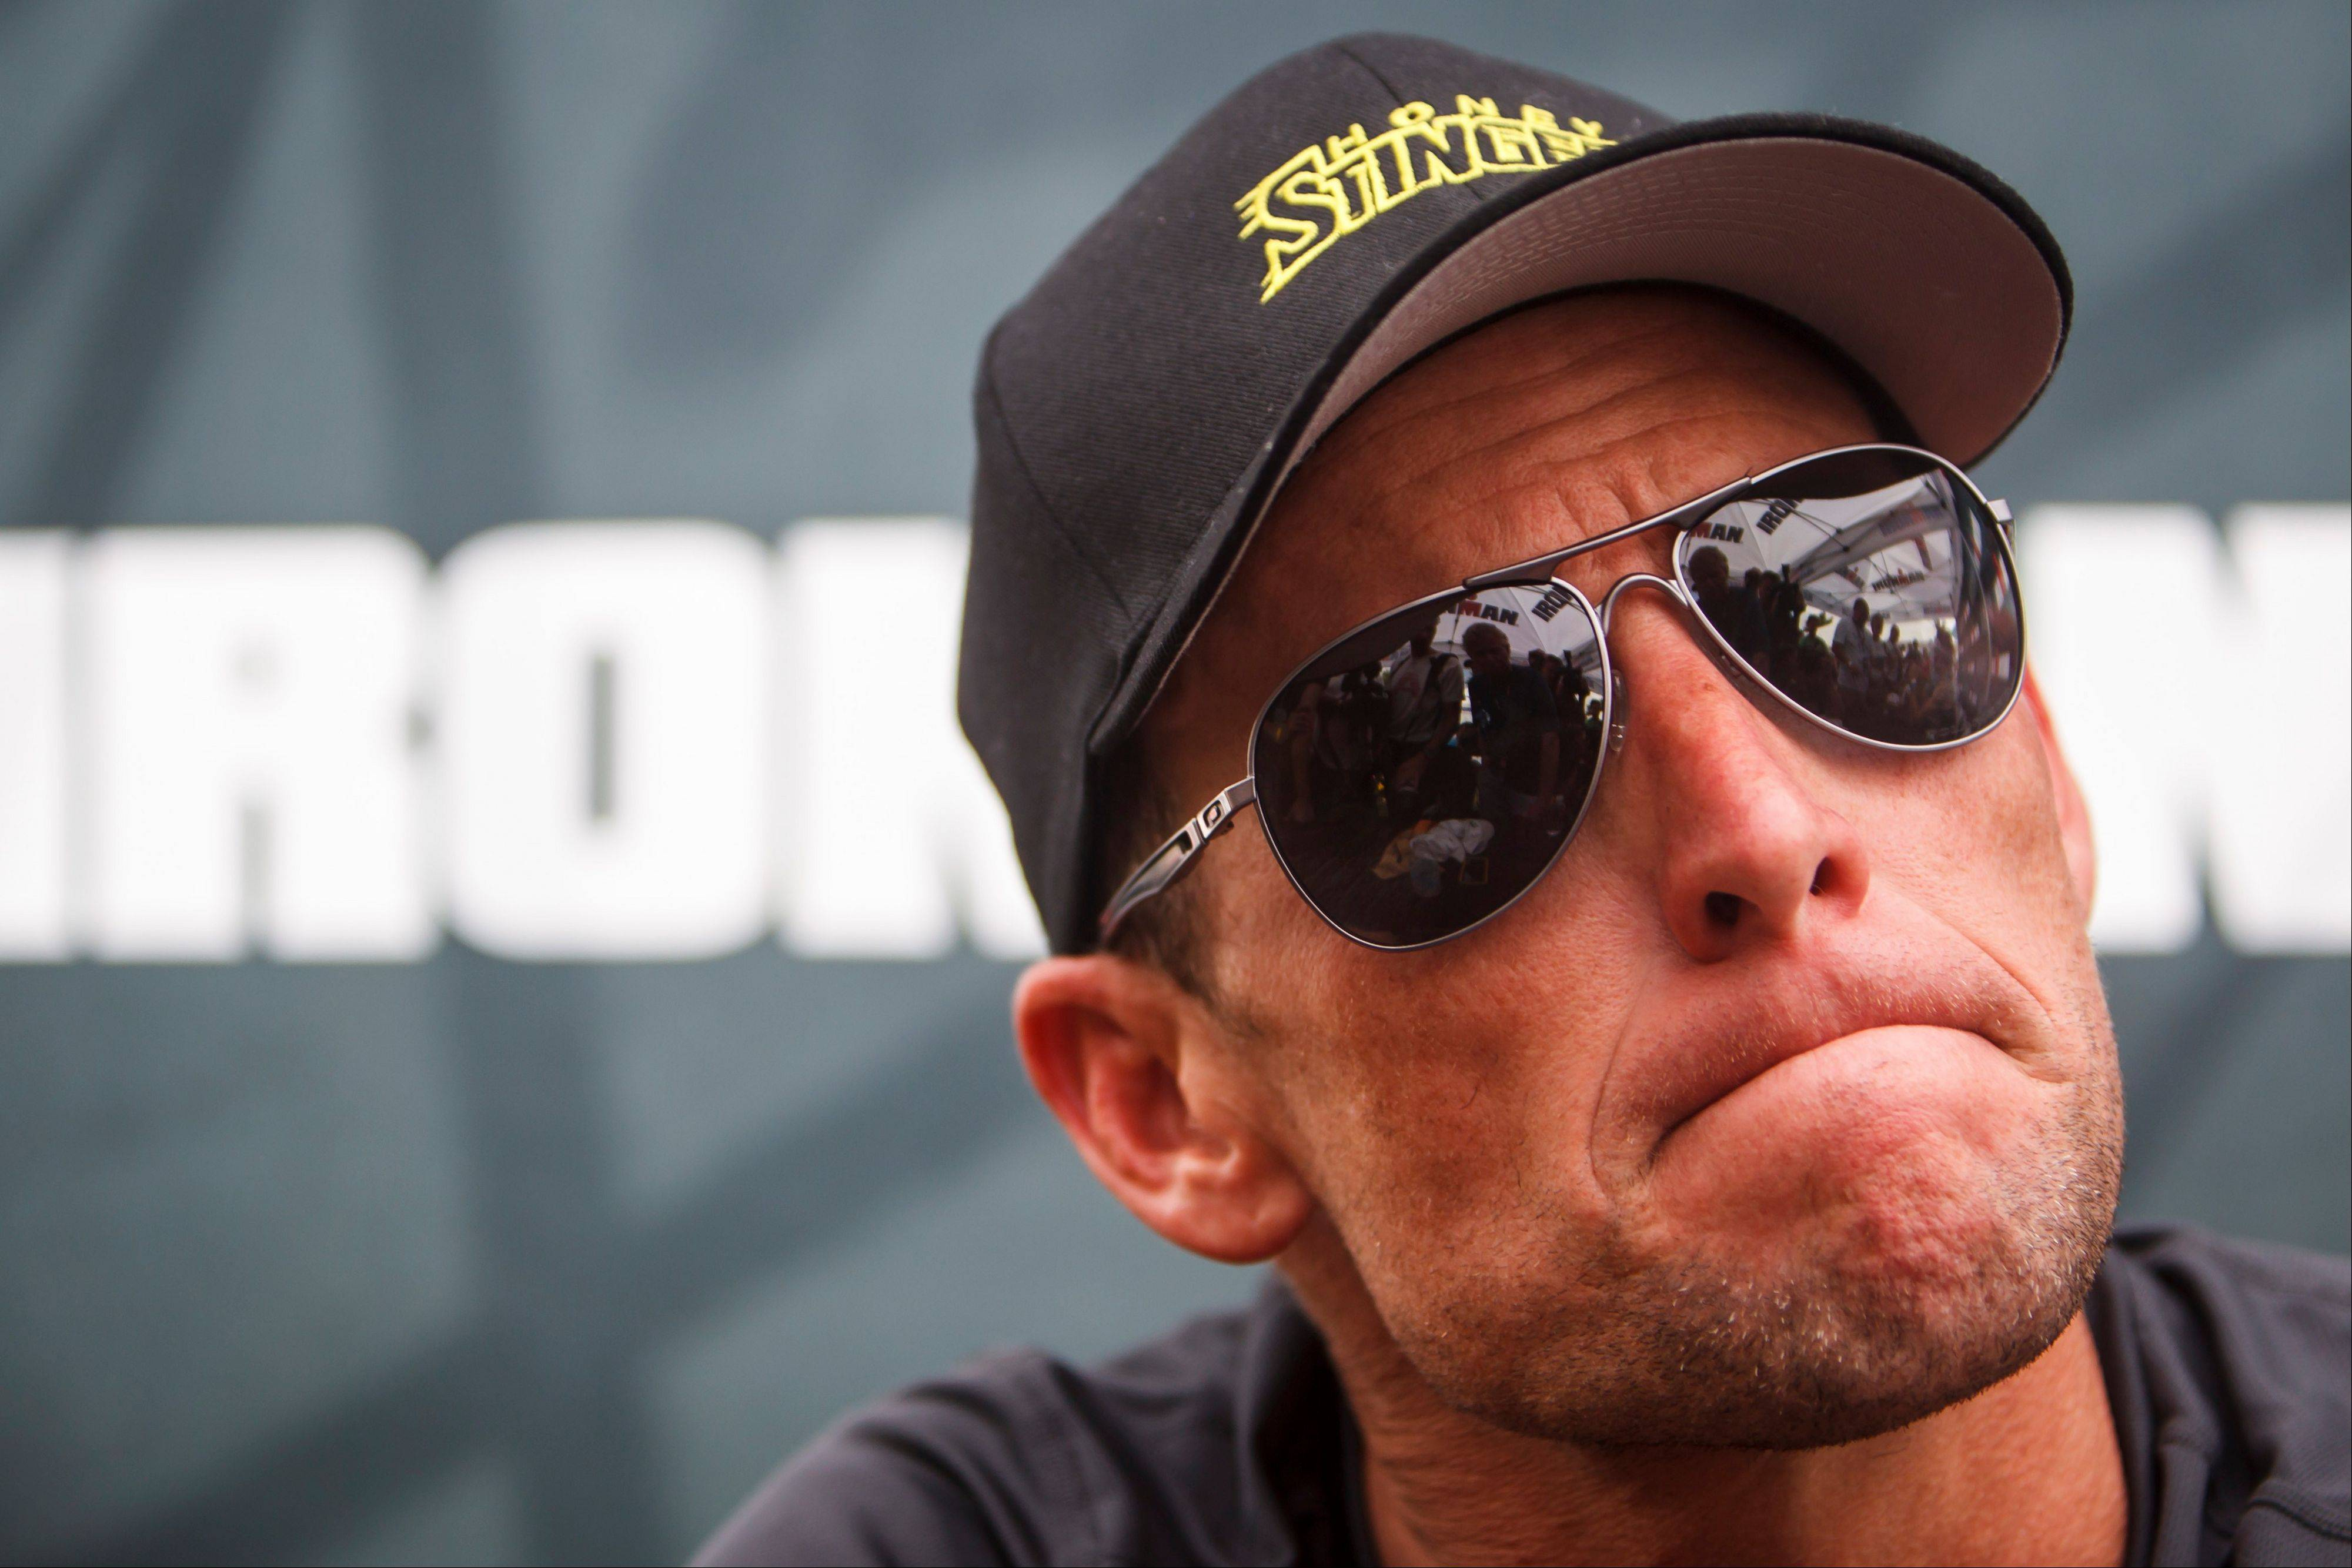 Lance Armstrong said Thursday night he is finished fighting a barrage of drug charges from the U.S. Anti-Doping Agency, putting his unprecedented string of seven Tour de France titles at risk along with his legacy as one of the greatest cyclists in history.